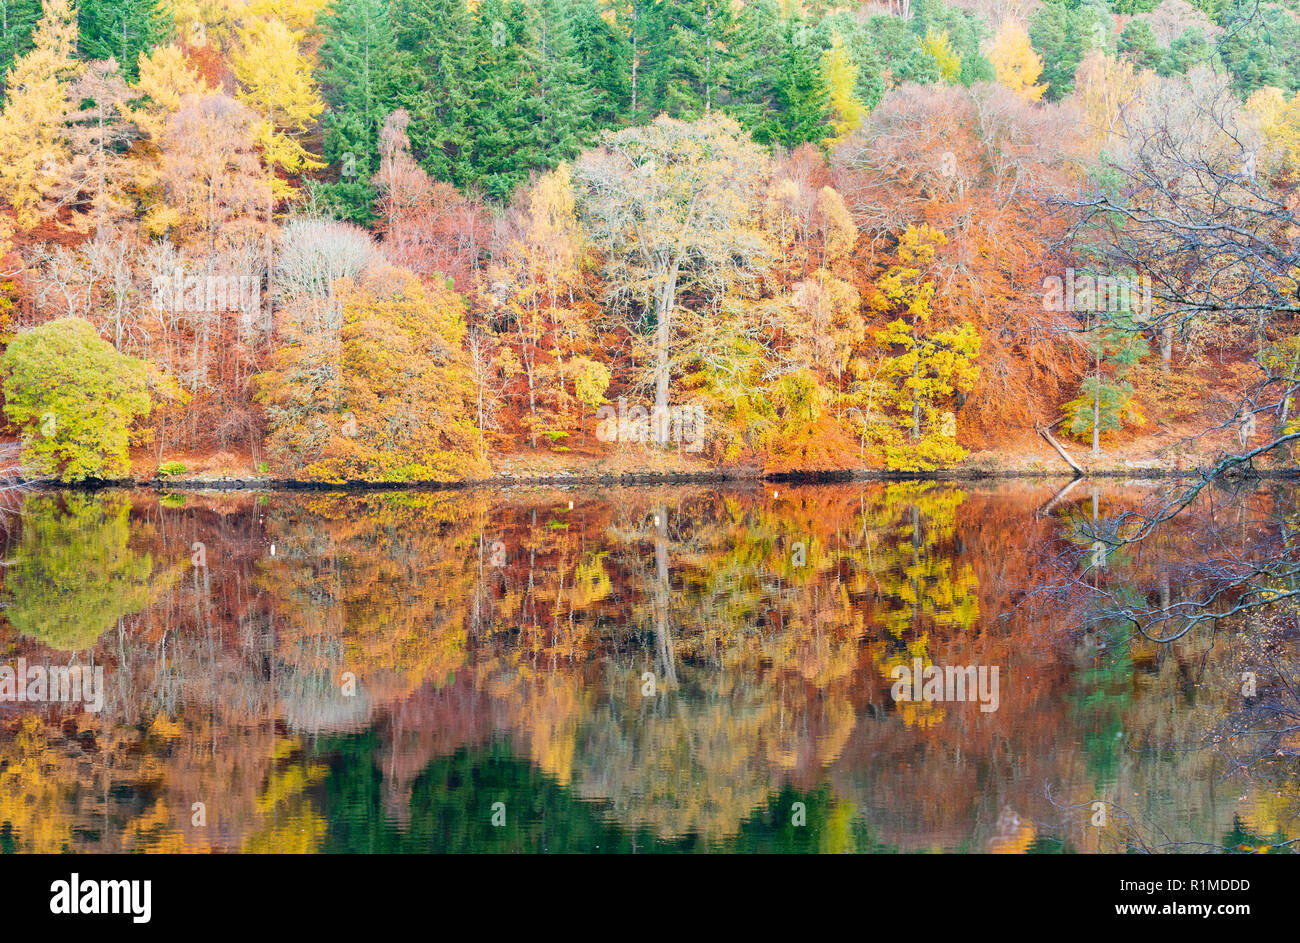 Spectacular late autumn tree colours  are reflected in the waters of Loch Faskally in Pitlochry, Perthshire, Scotland, UK. - Stock Image